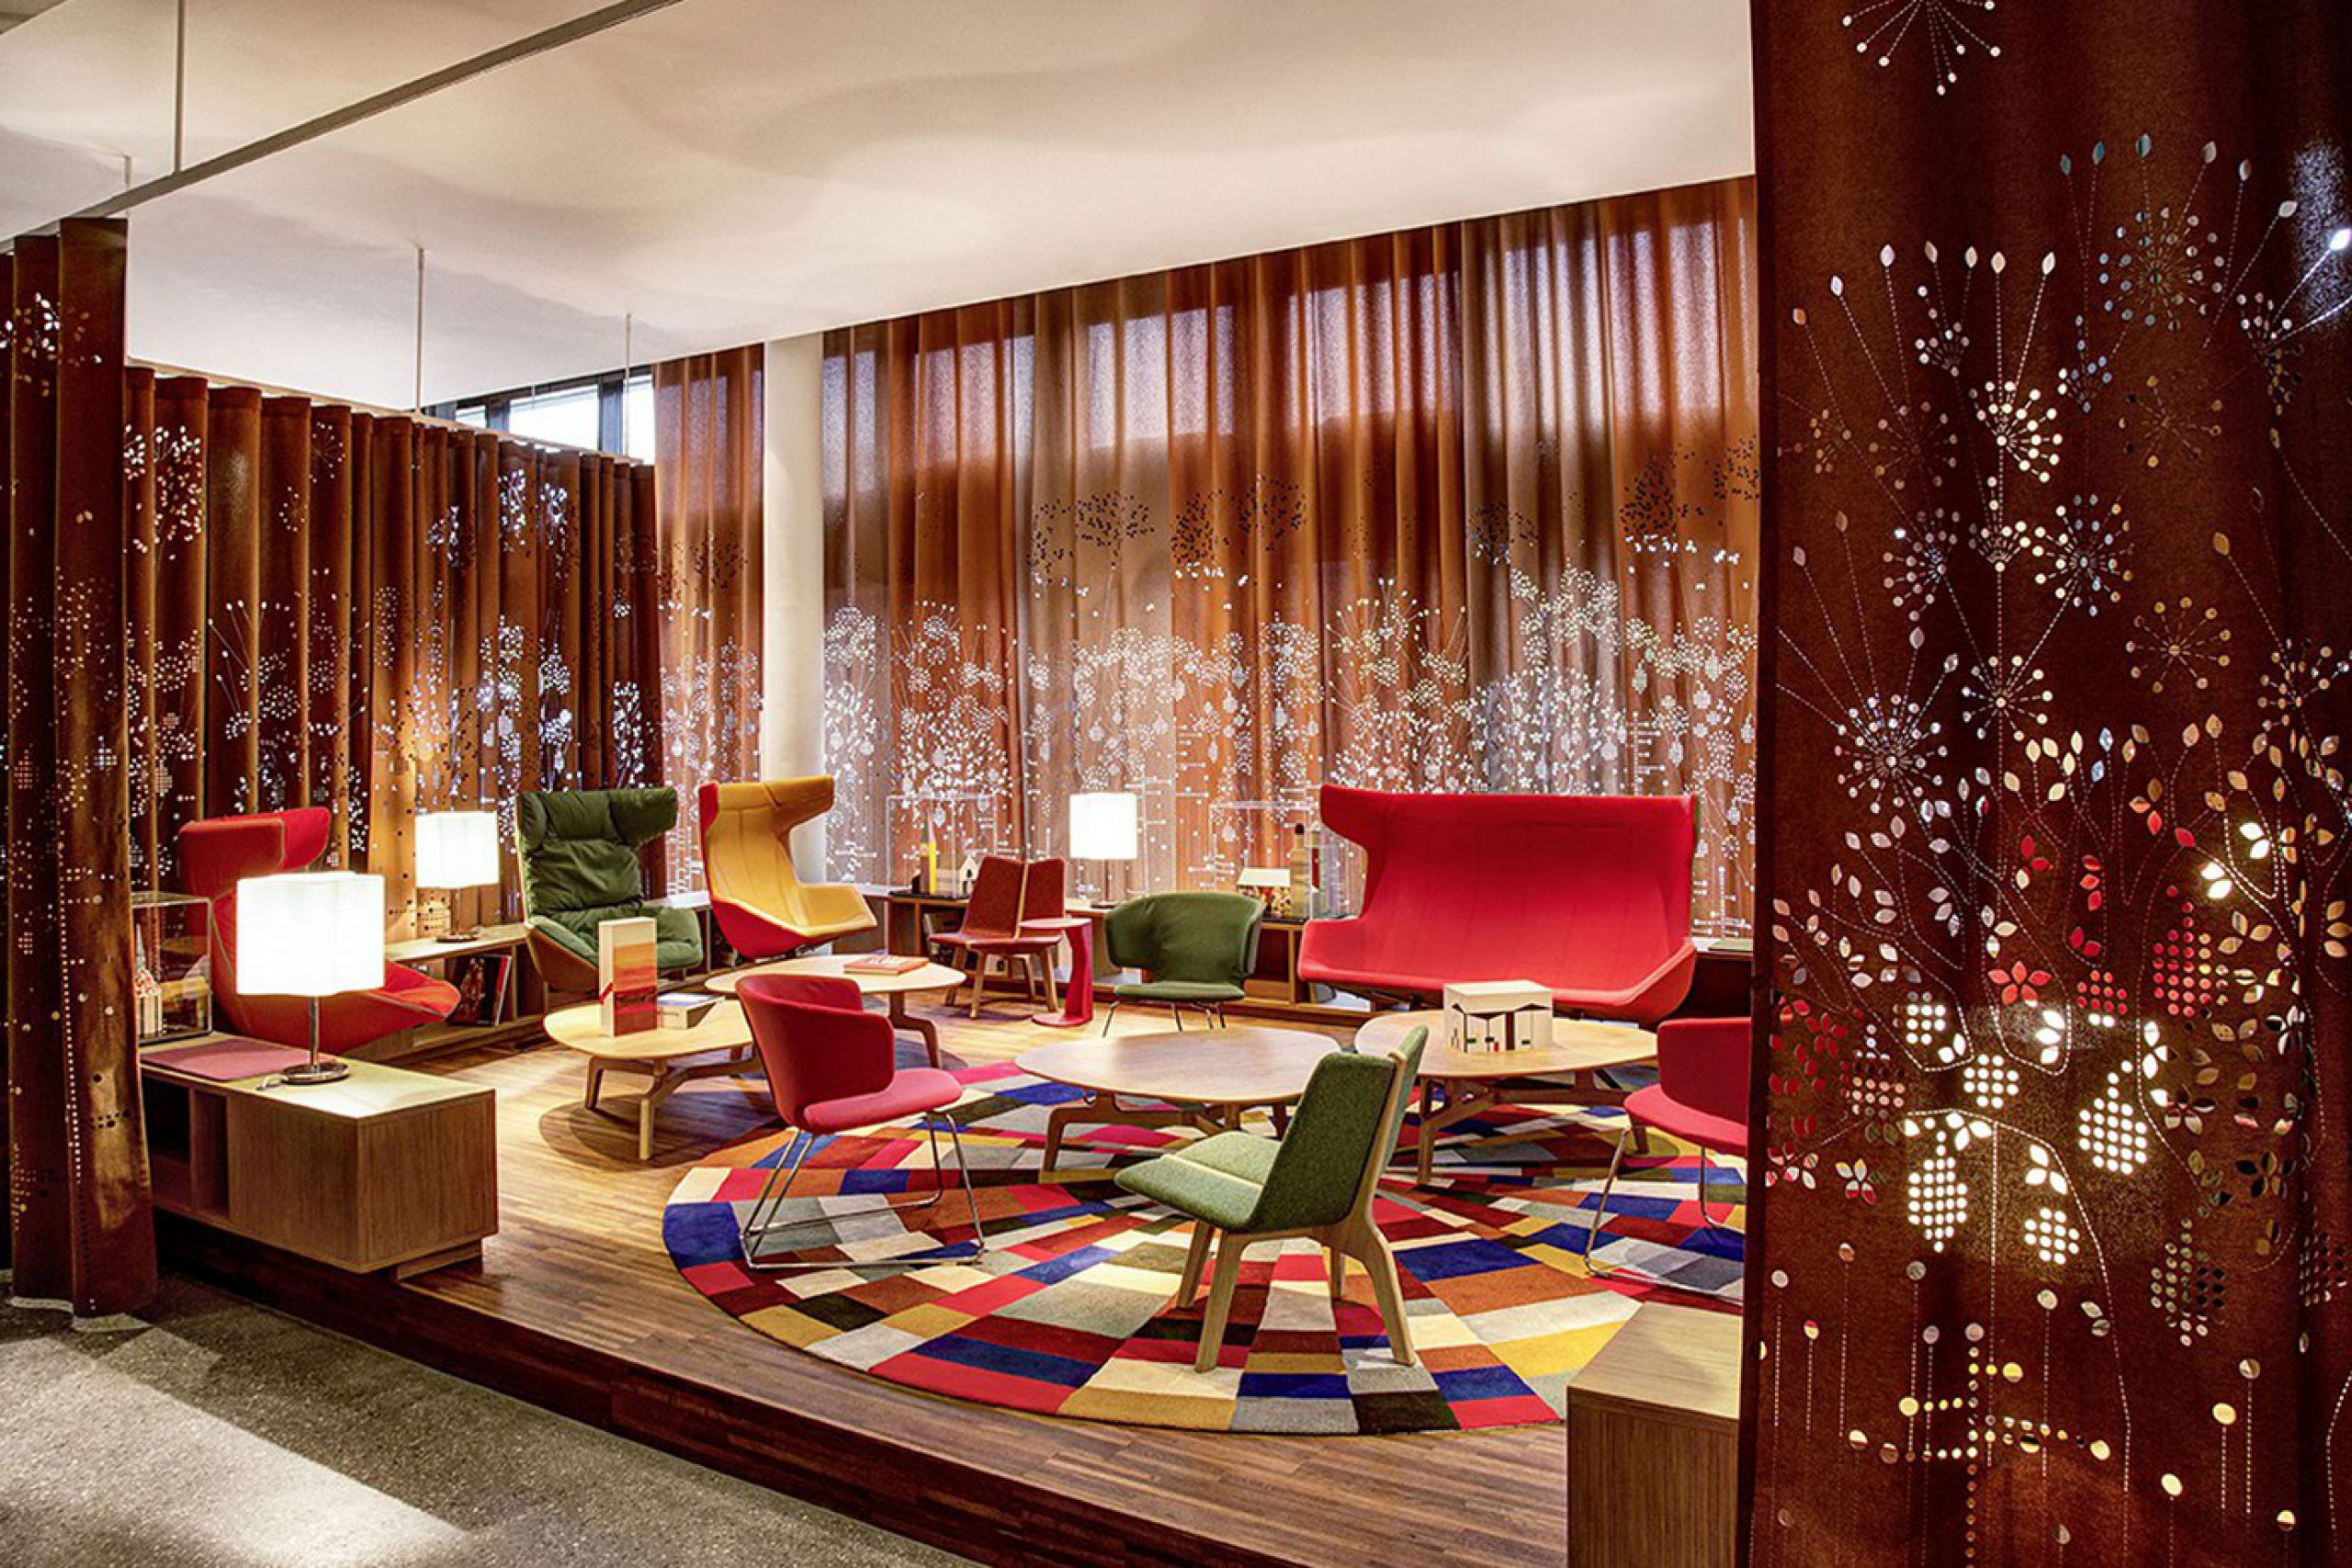 KVADRAT for Hotel Zurich West